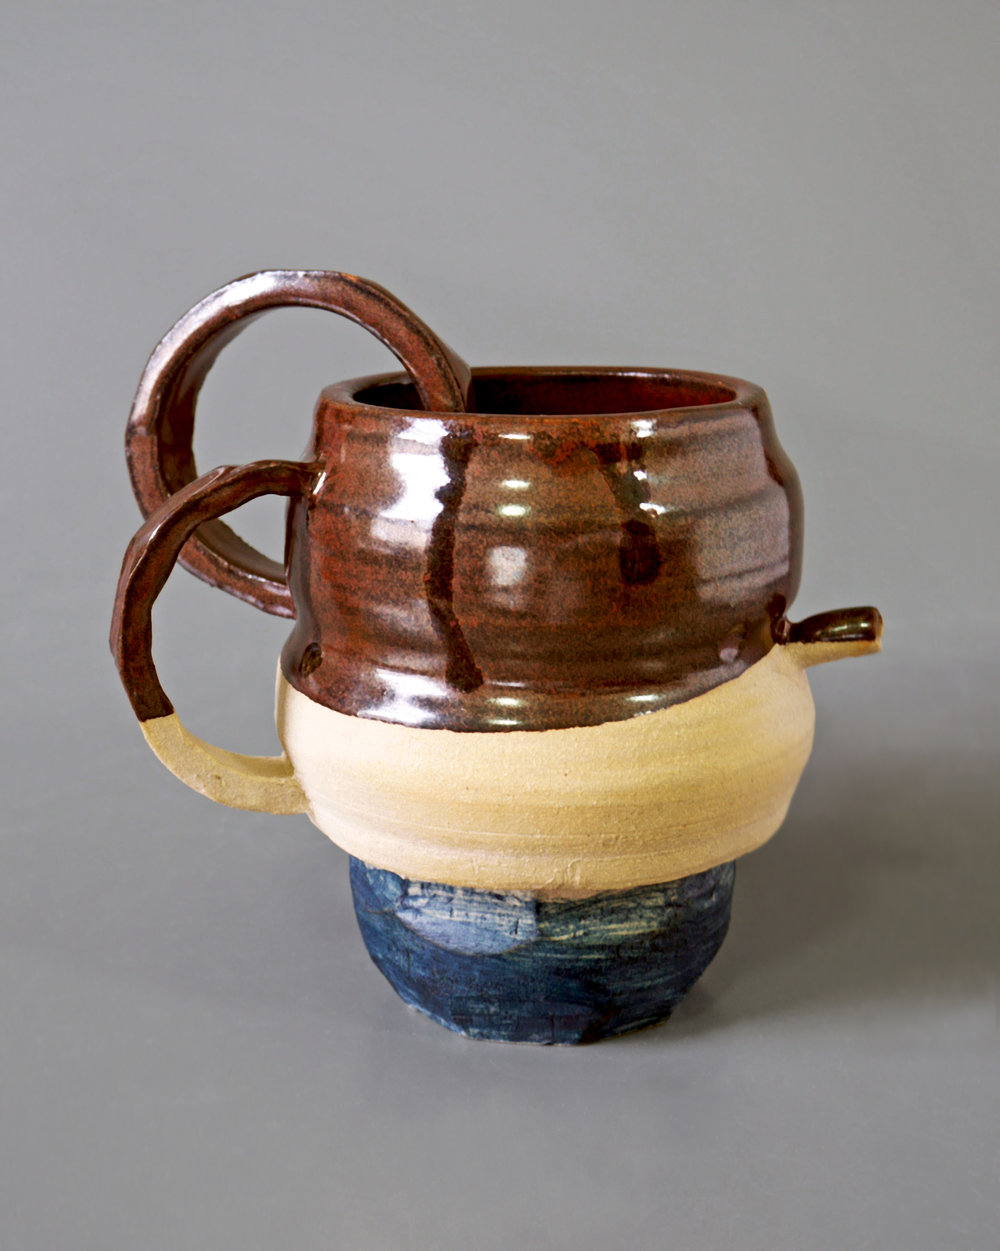 "Elizabeth Quick Ceramics I, Spring 2014 ""Thrown and Altered"" Assignment white stoneware, cone 6 oxidation, underglaze, glaze 6"" x 10"" x 6"""